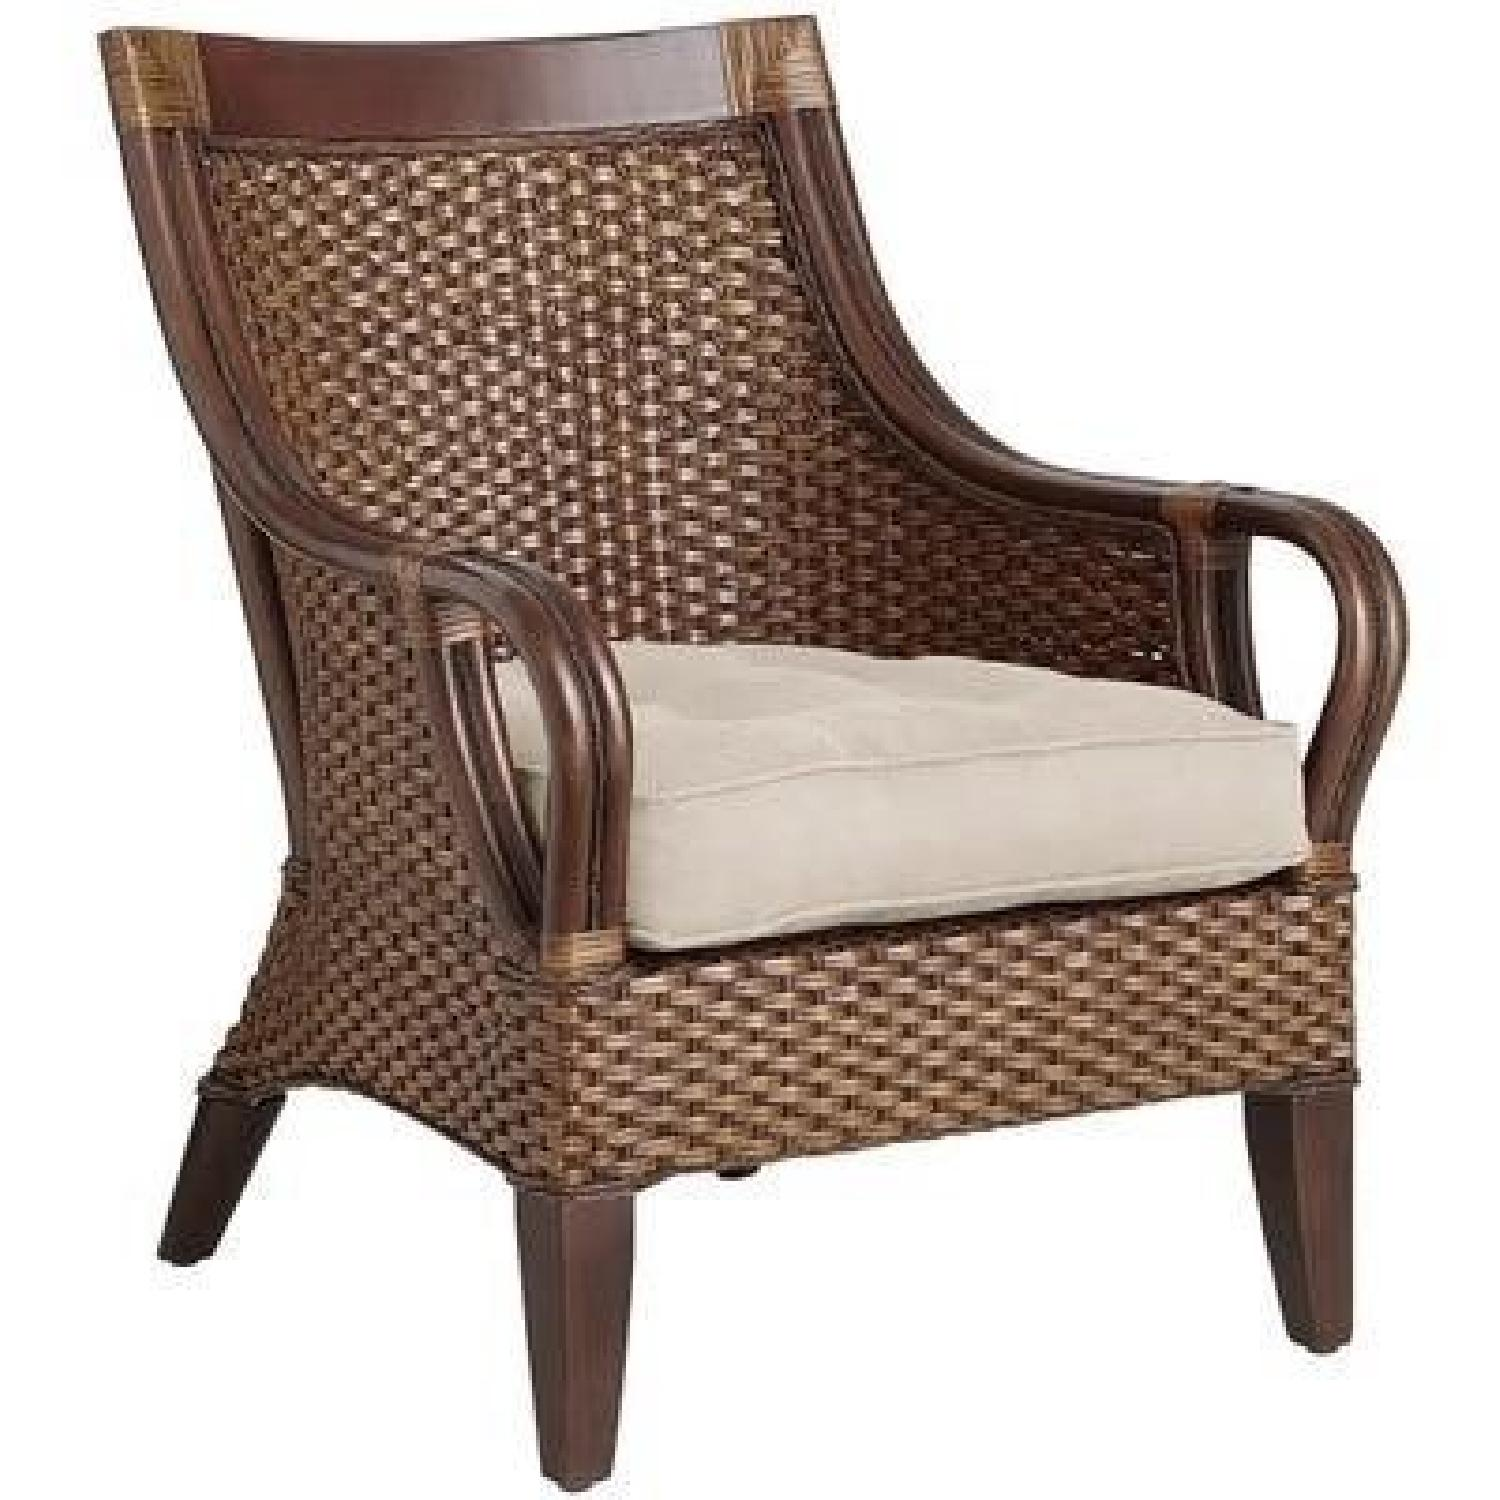 Pier 1 Indoor Outdoor Wicker Chairs Aptdeco